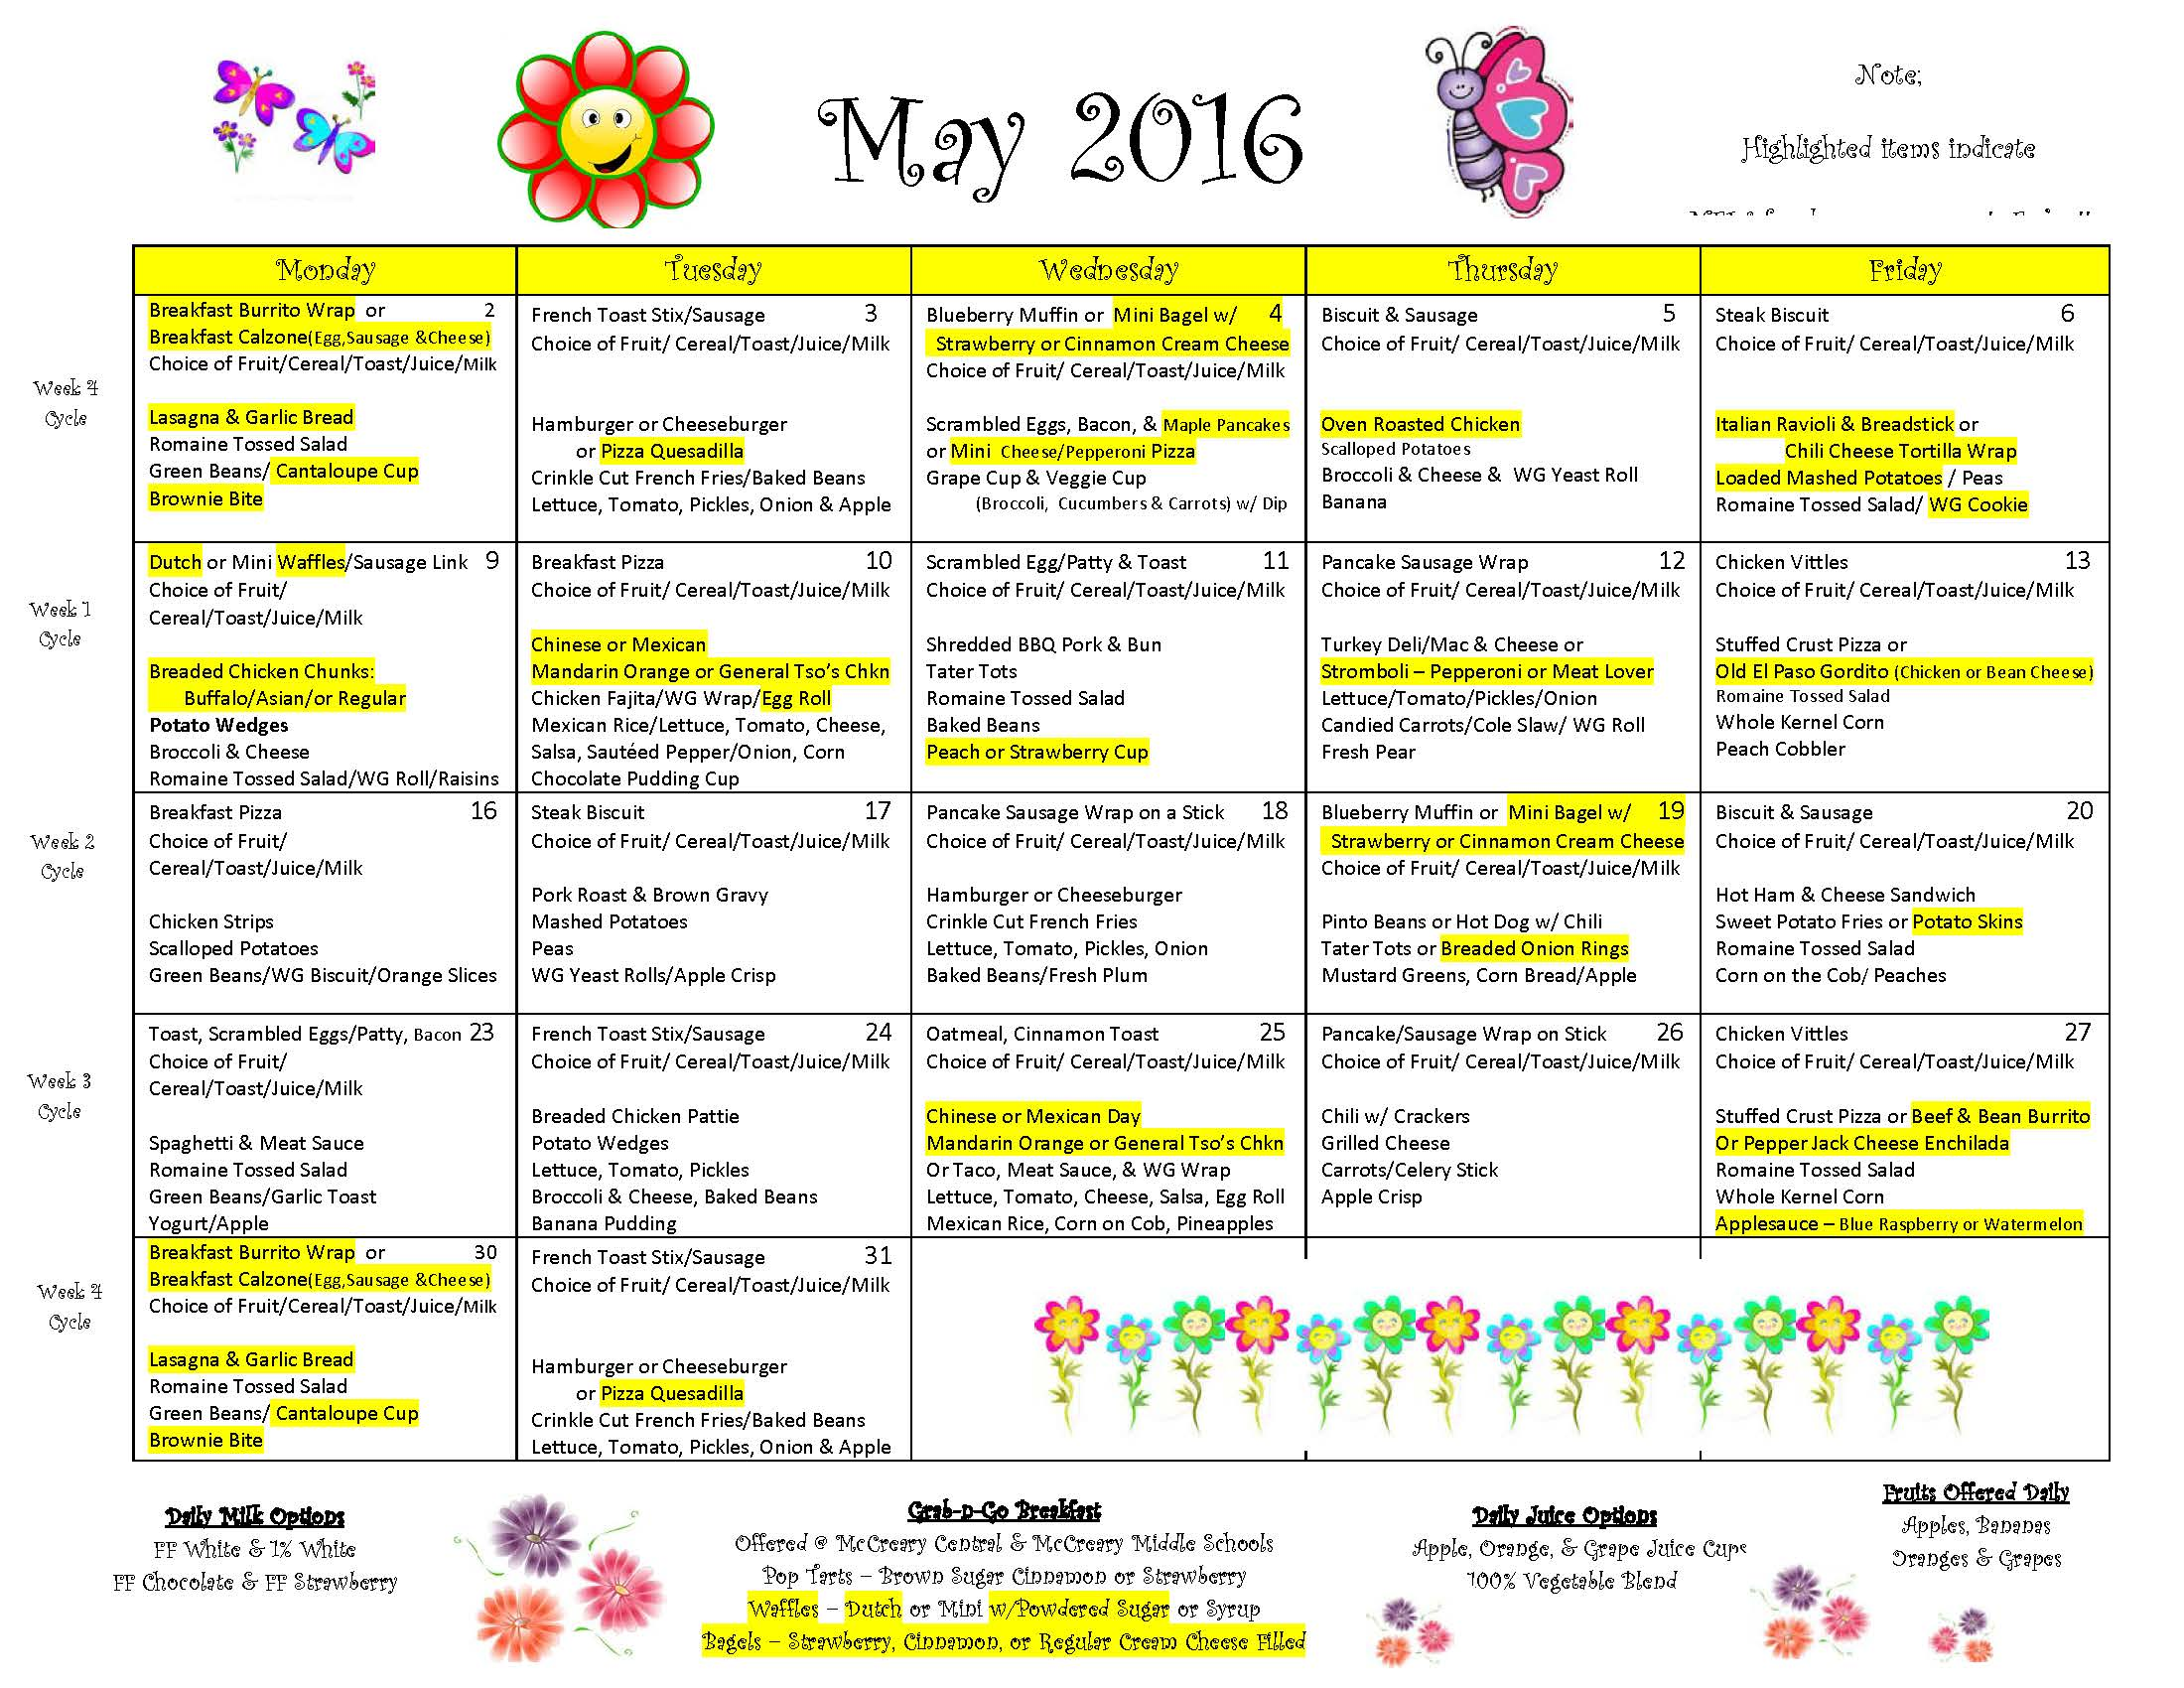 District-wide Breakfast & Lunch Menu for May 2016